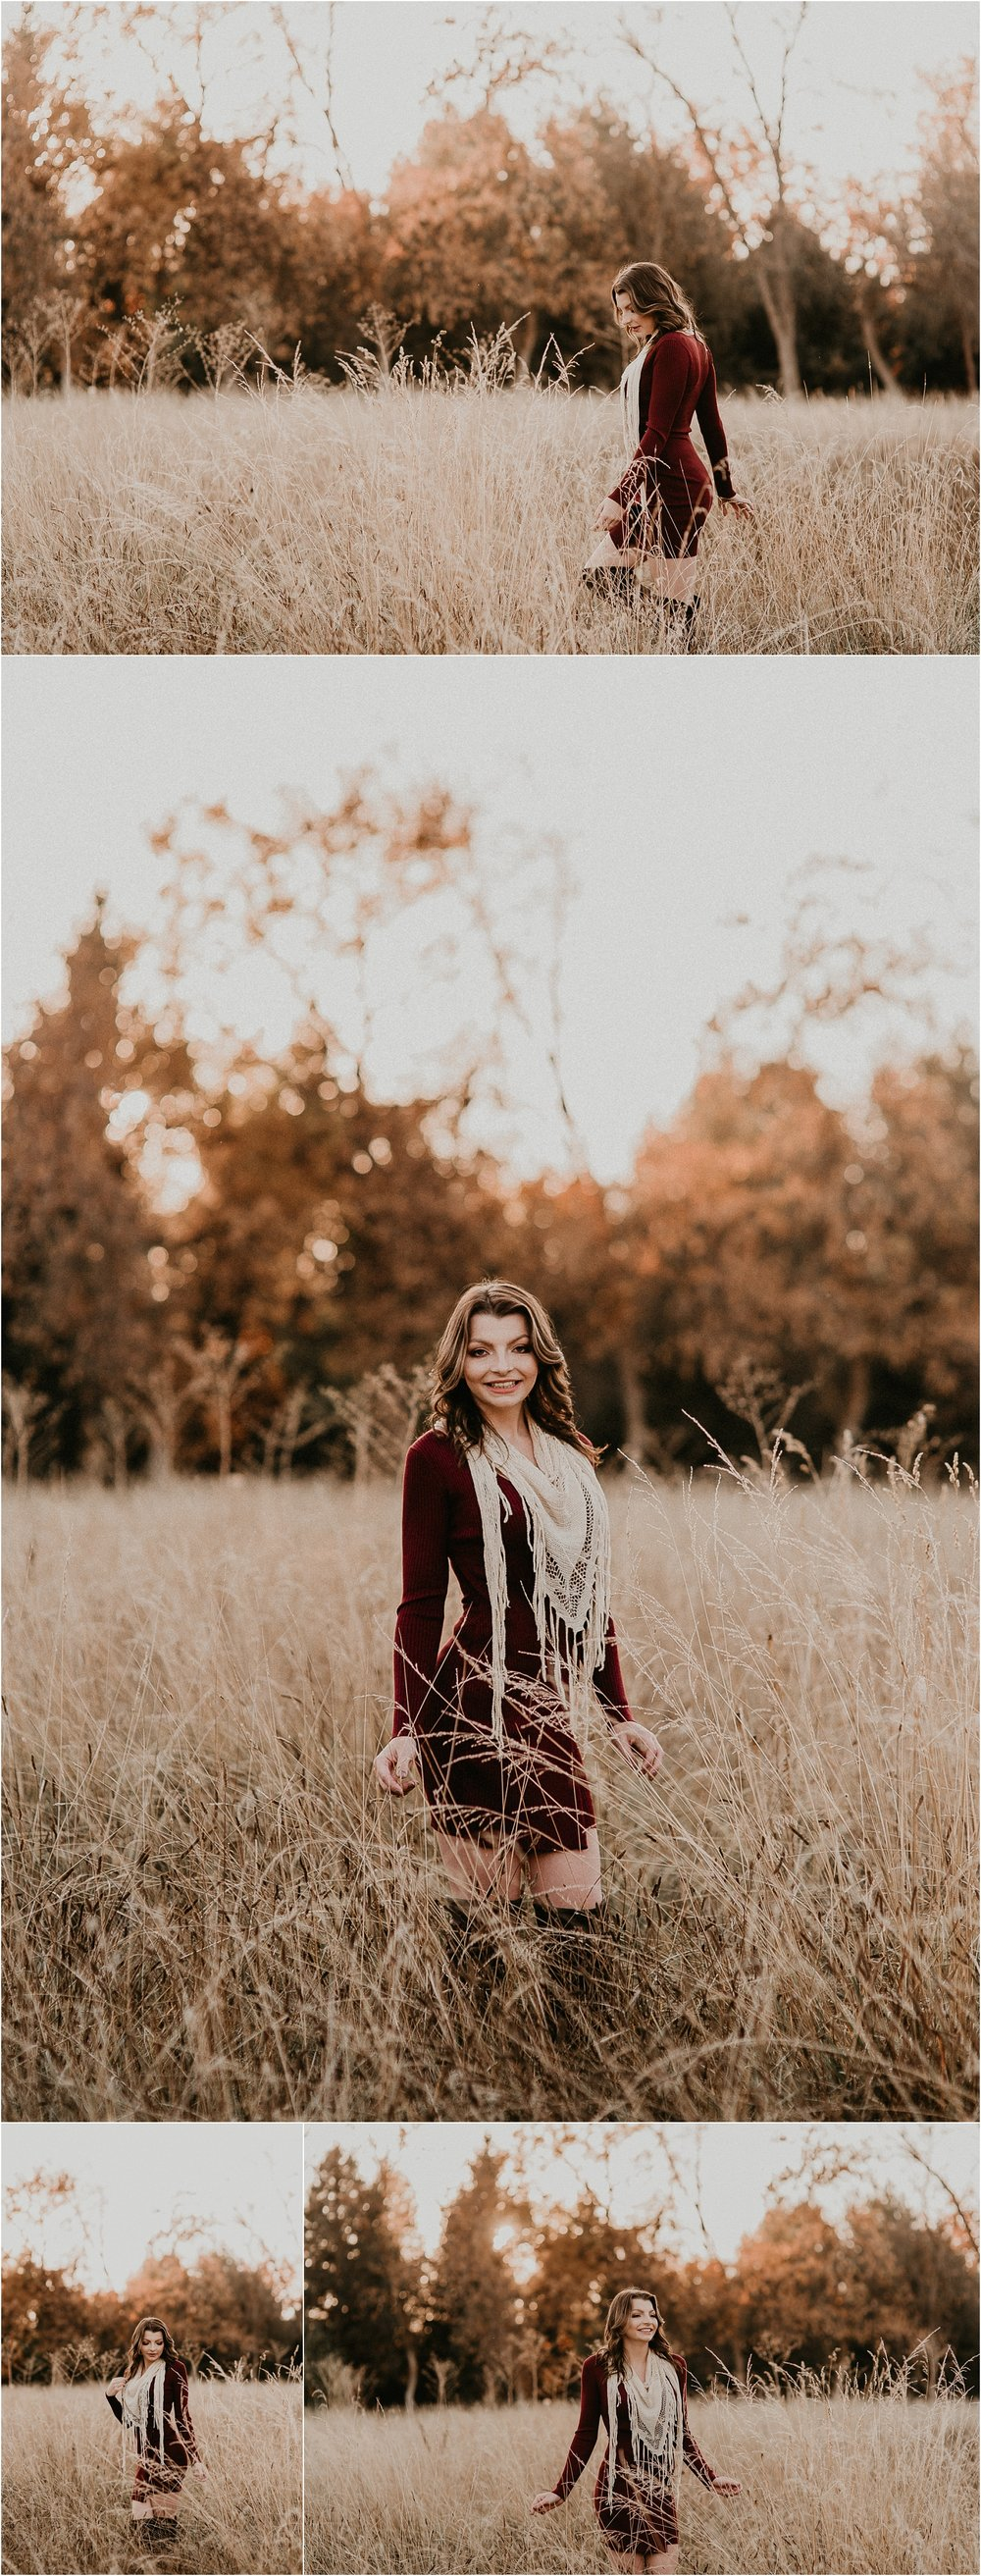 Boise Senior Photographer Makayla Madden Photography Best Unique Award Winning Fall Winter Senior Pictures Kuna Meridian Senior Photography